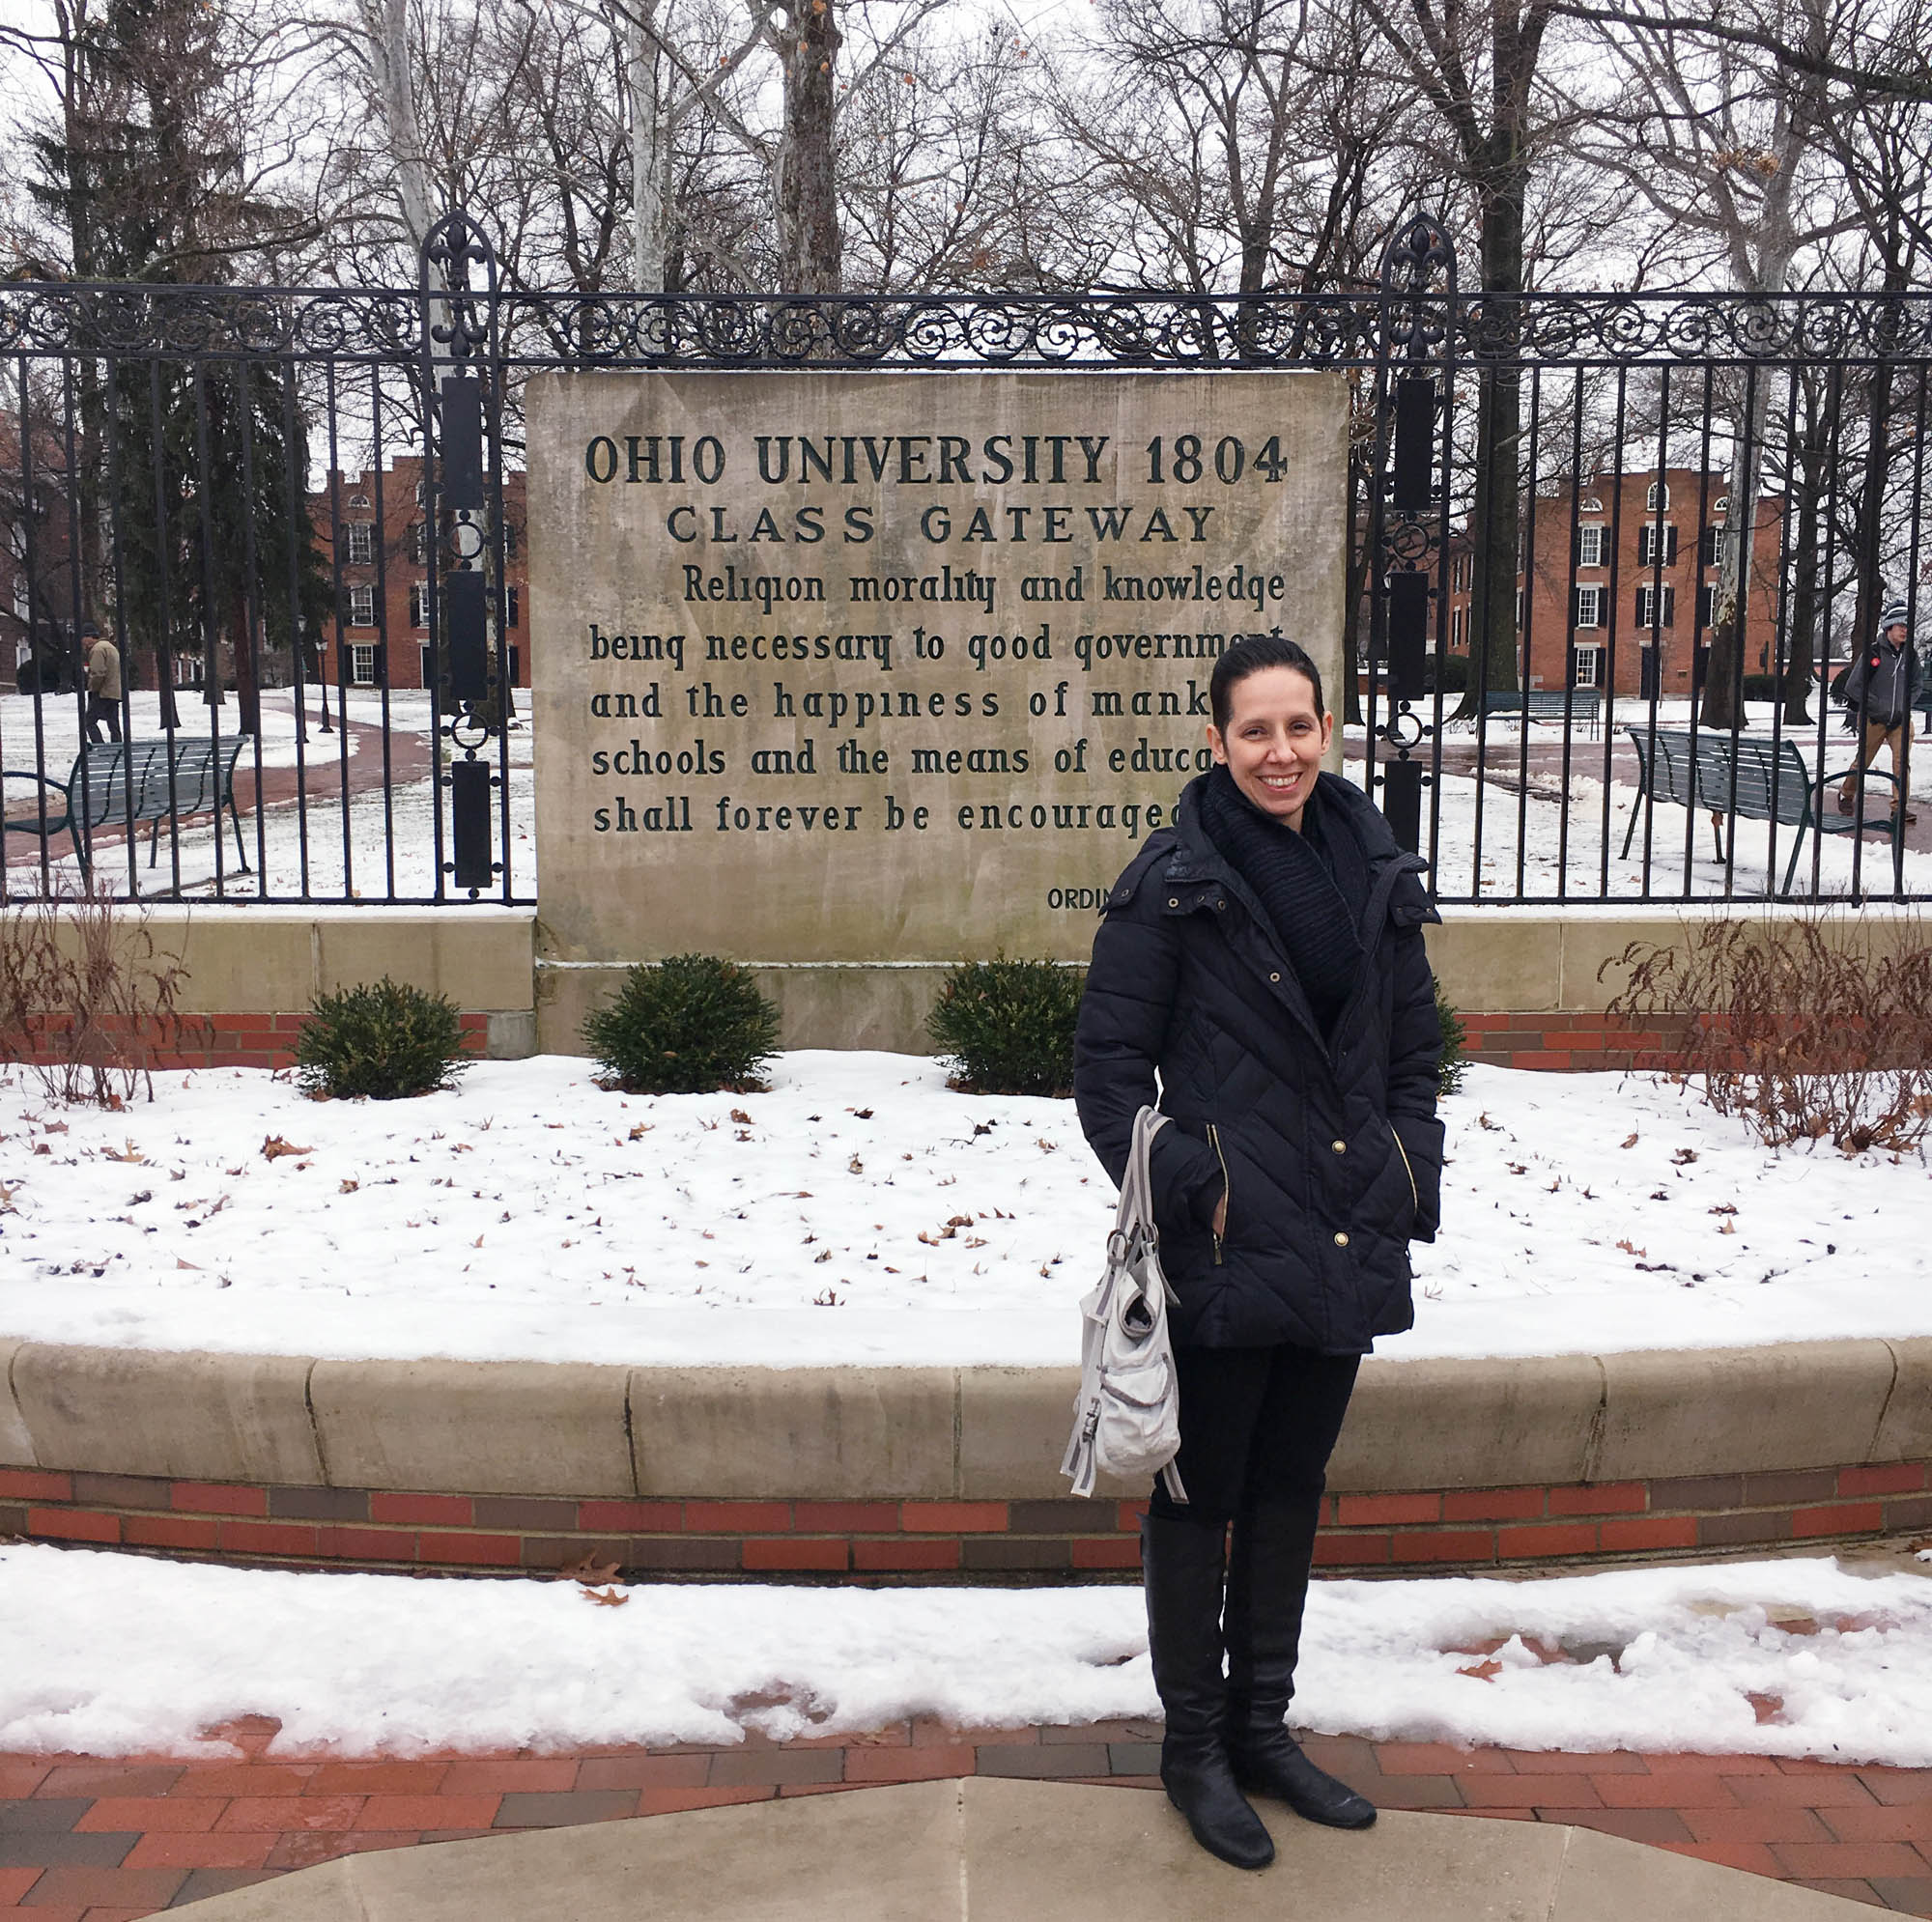 Nancy Armstrong visiting Ohio University 1